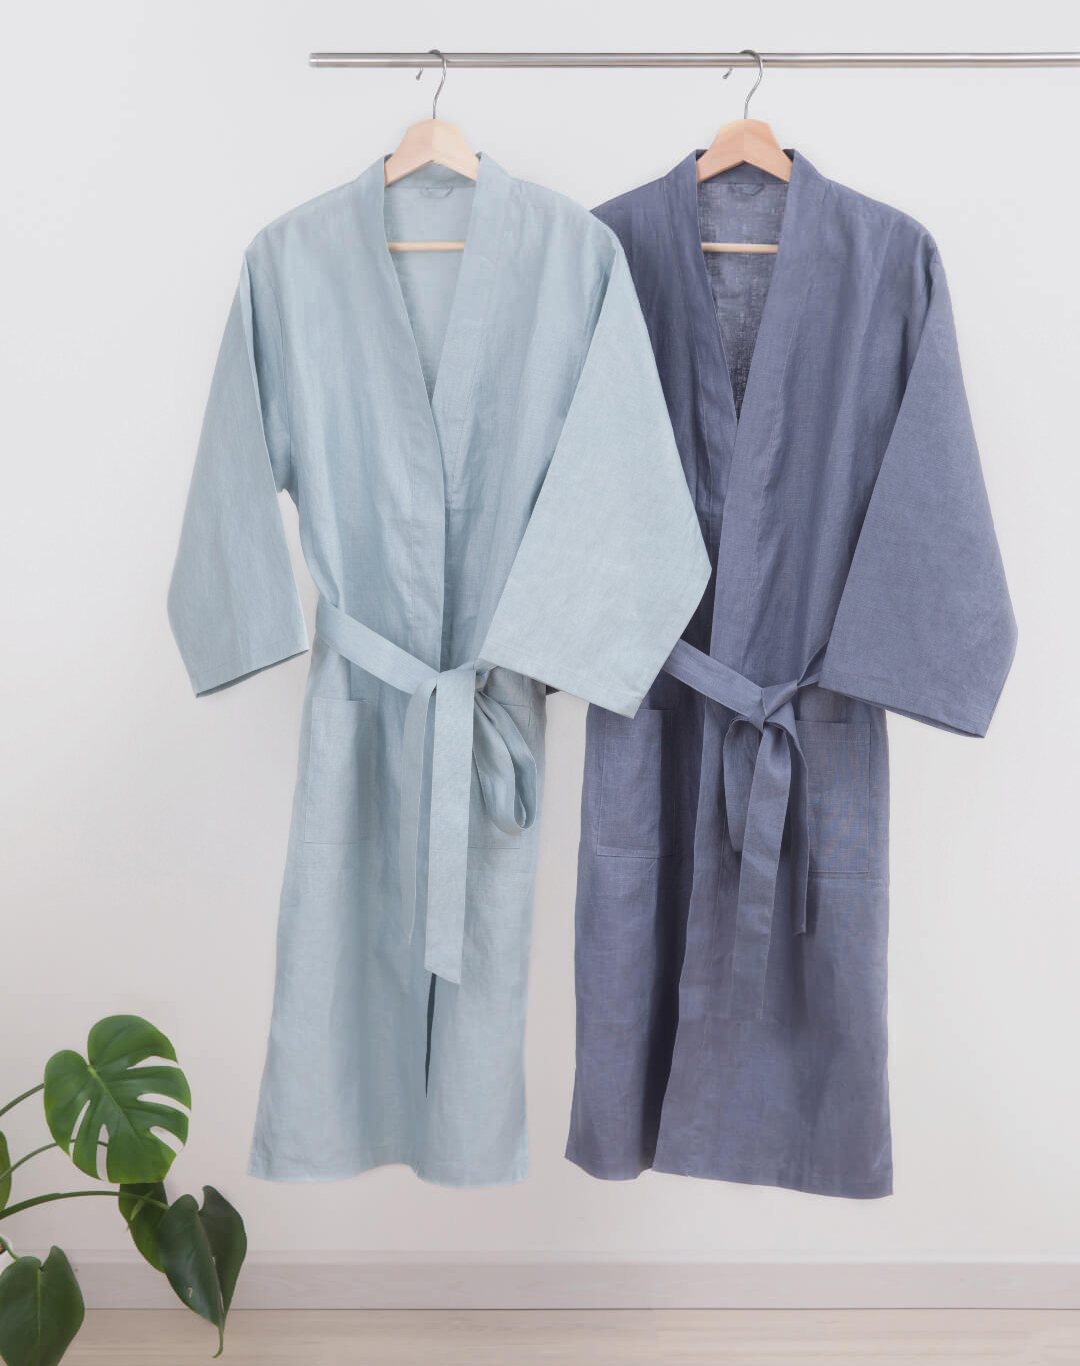 ZaxArt-Linen-Couple-Nightgown-Grey - ZY170908